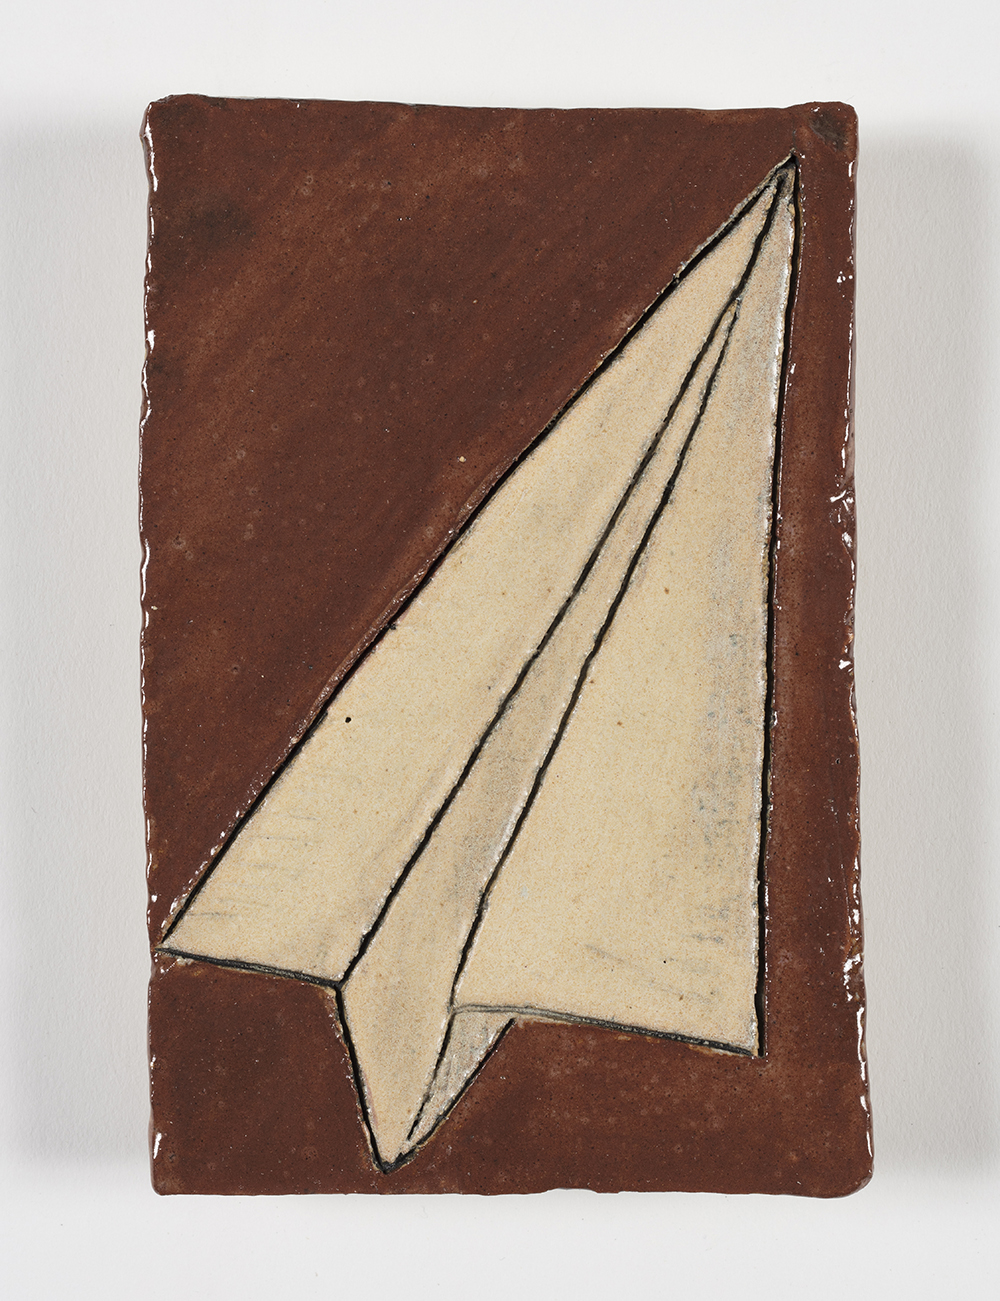 Kevin McNamee-Tweed.<em> Paper Airplane</em>, 2019. Glazed ceramic, 5 1/2 x 4 inches (14 x 10.2 cm)